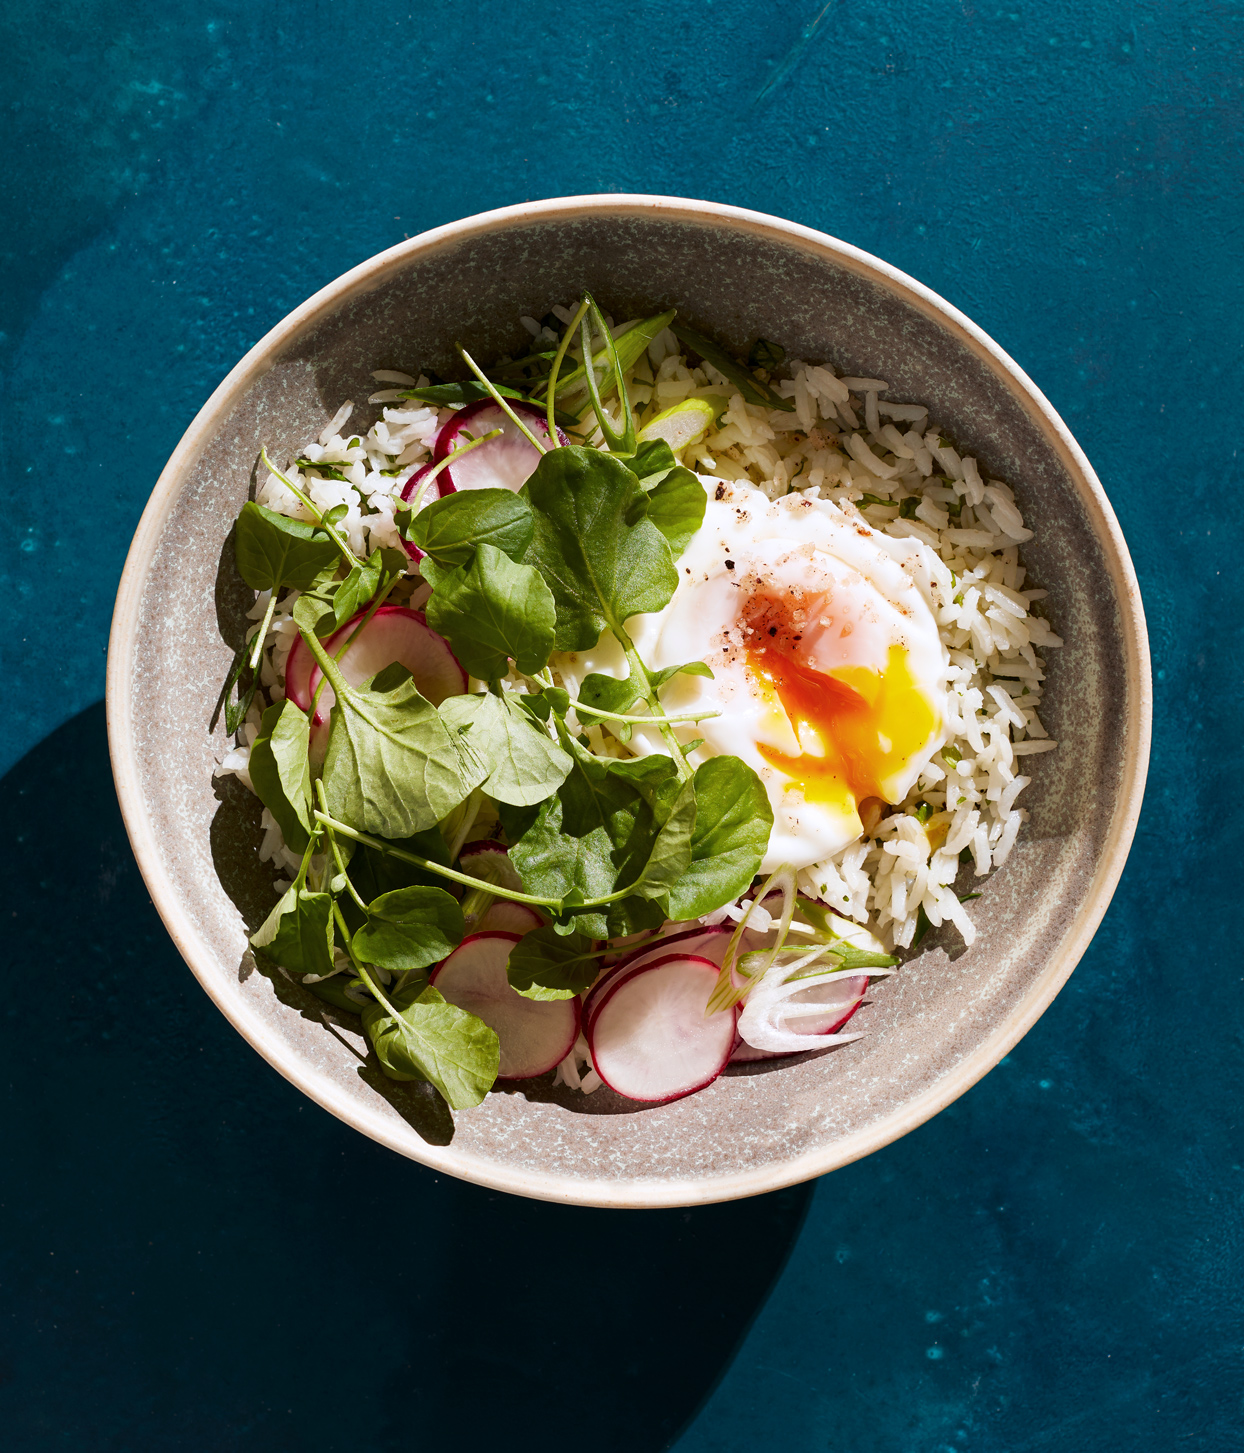 cilantro rice bowl with poached eggs and greens topped with radish slices